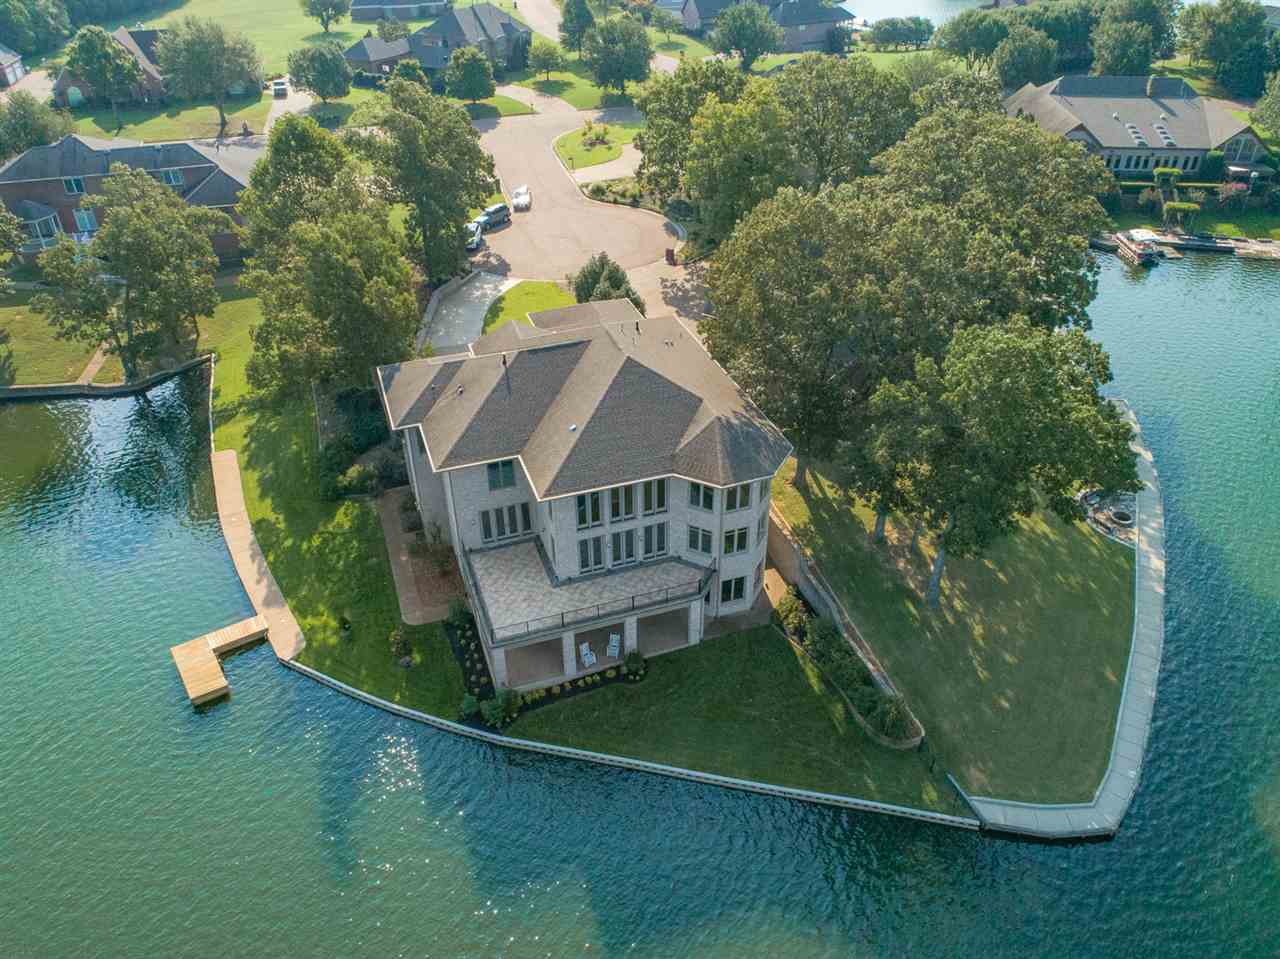 Tremendous Lakeland Tn Real Estate For Sale Property Search Results Download Free Architecture Designs Boapuretrmadebymaigaardcom